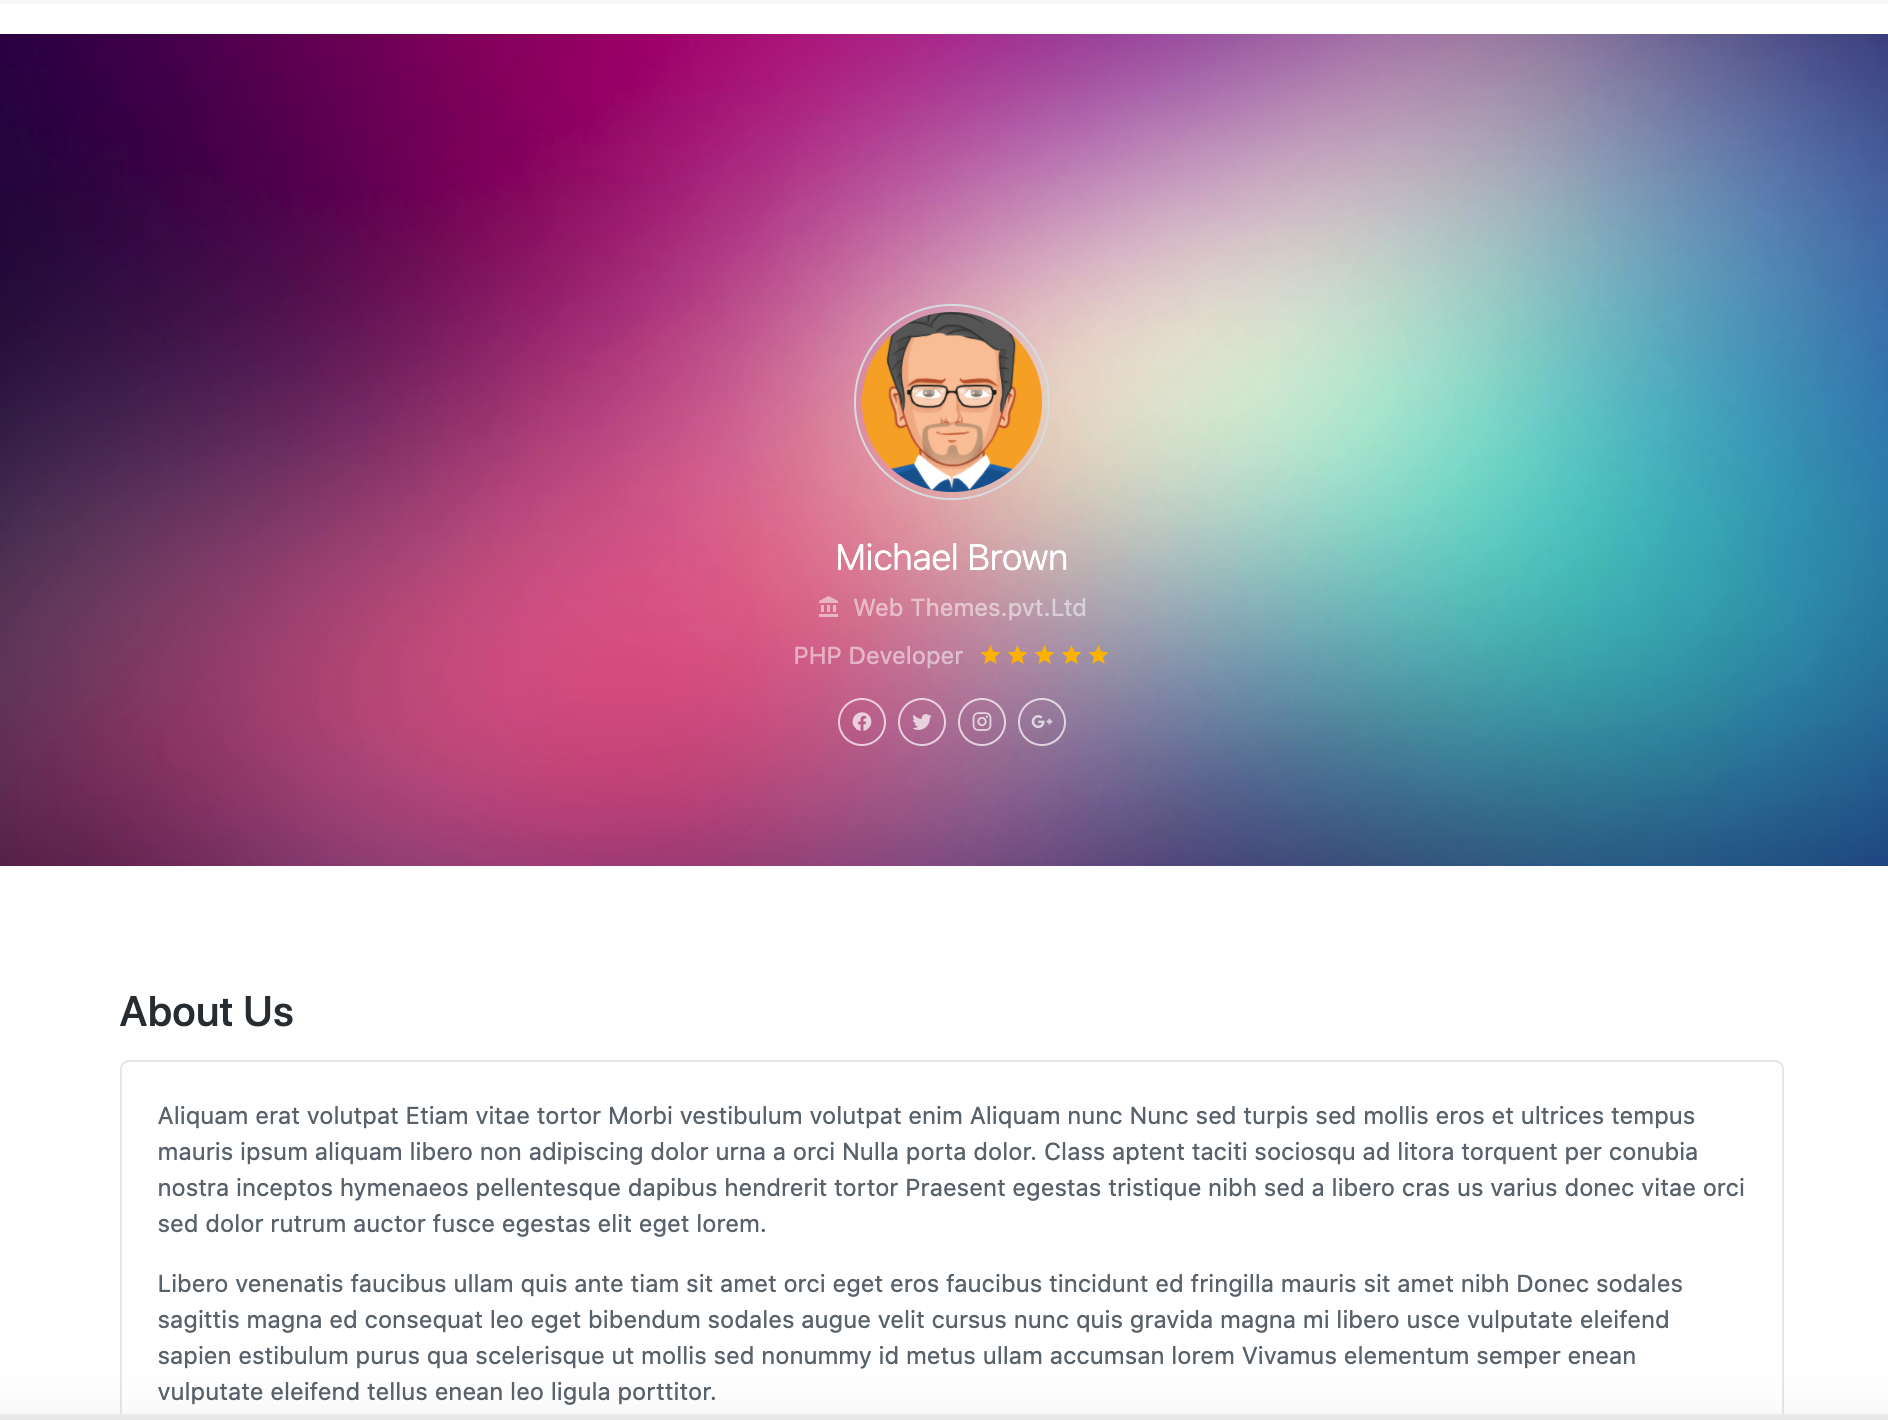 Bootstrap bs4 light resume page example